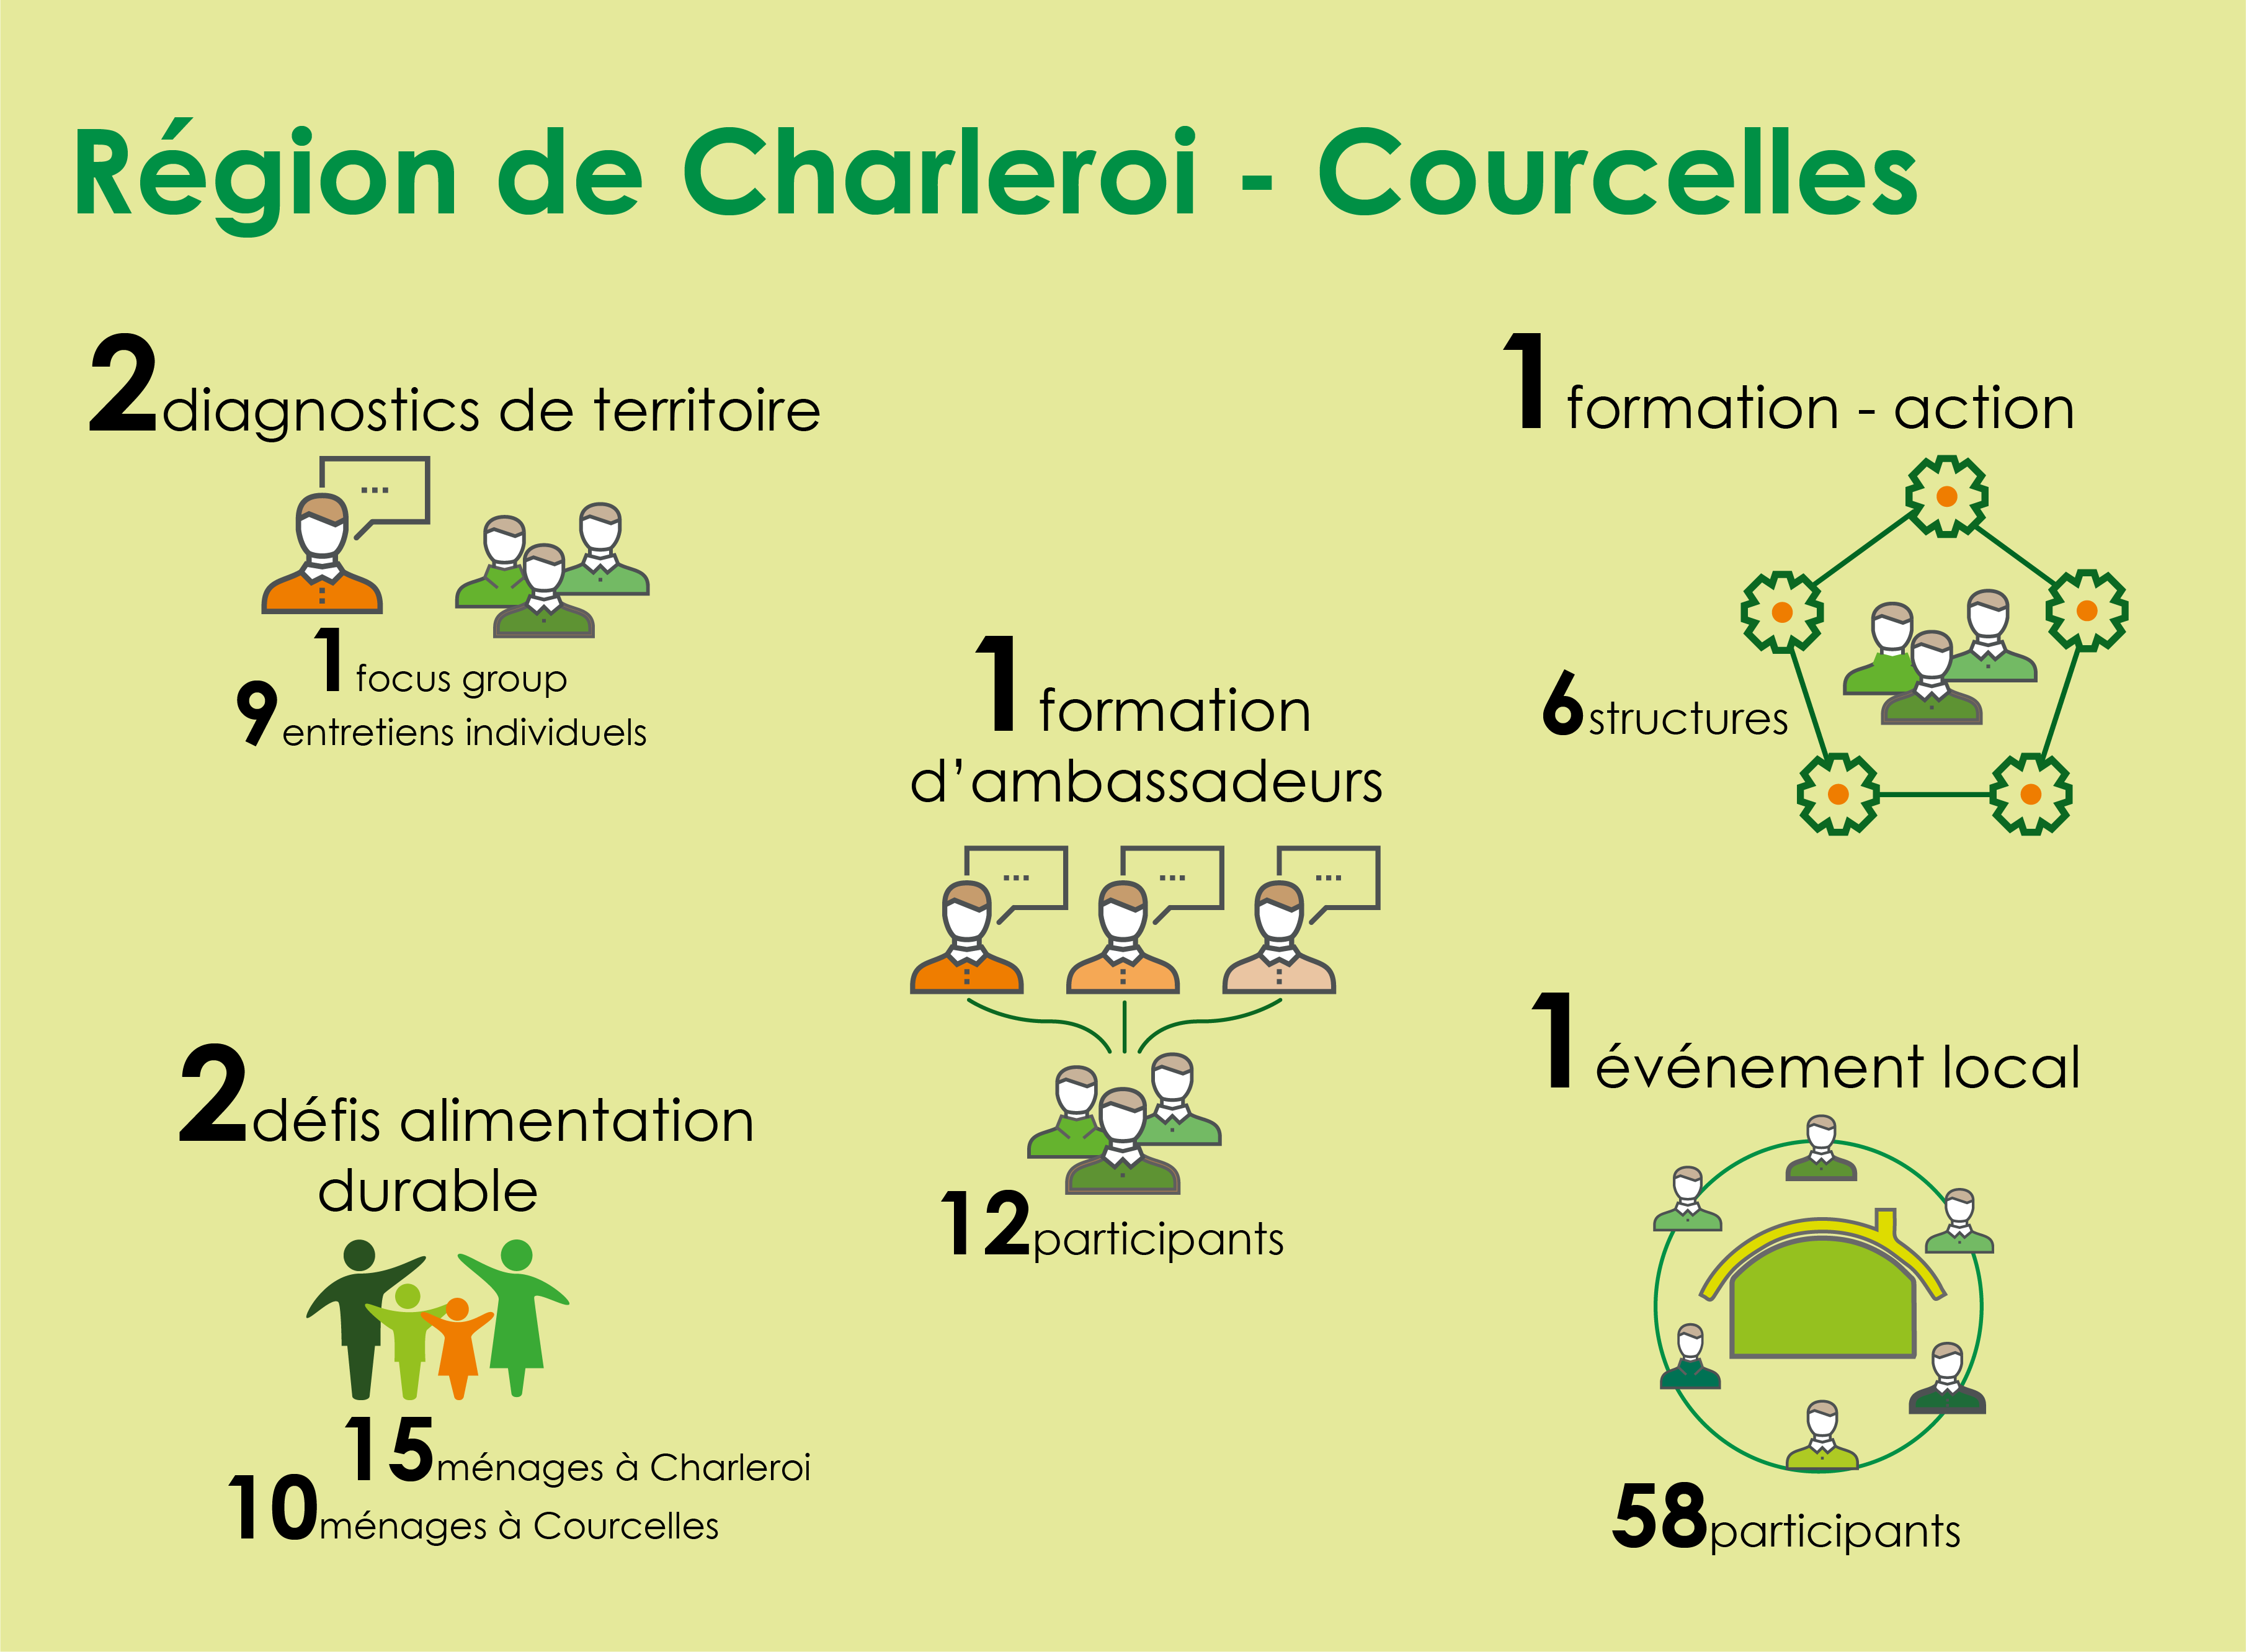 20170810_infographie_Charleroi_Courcelles